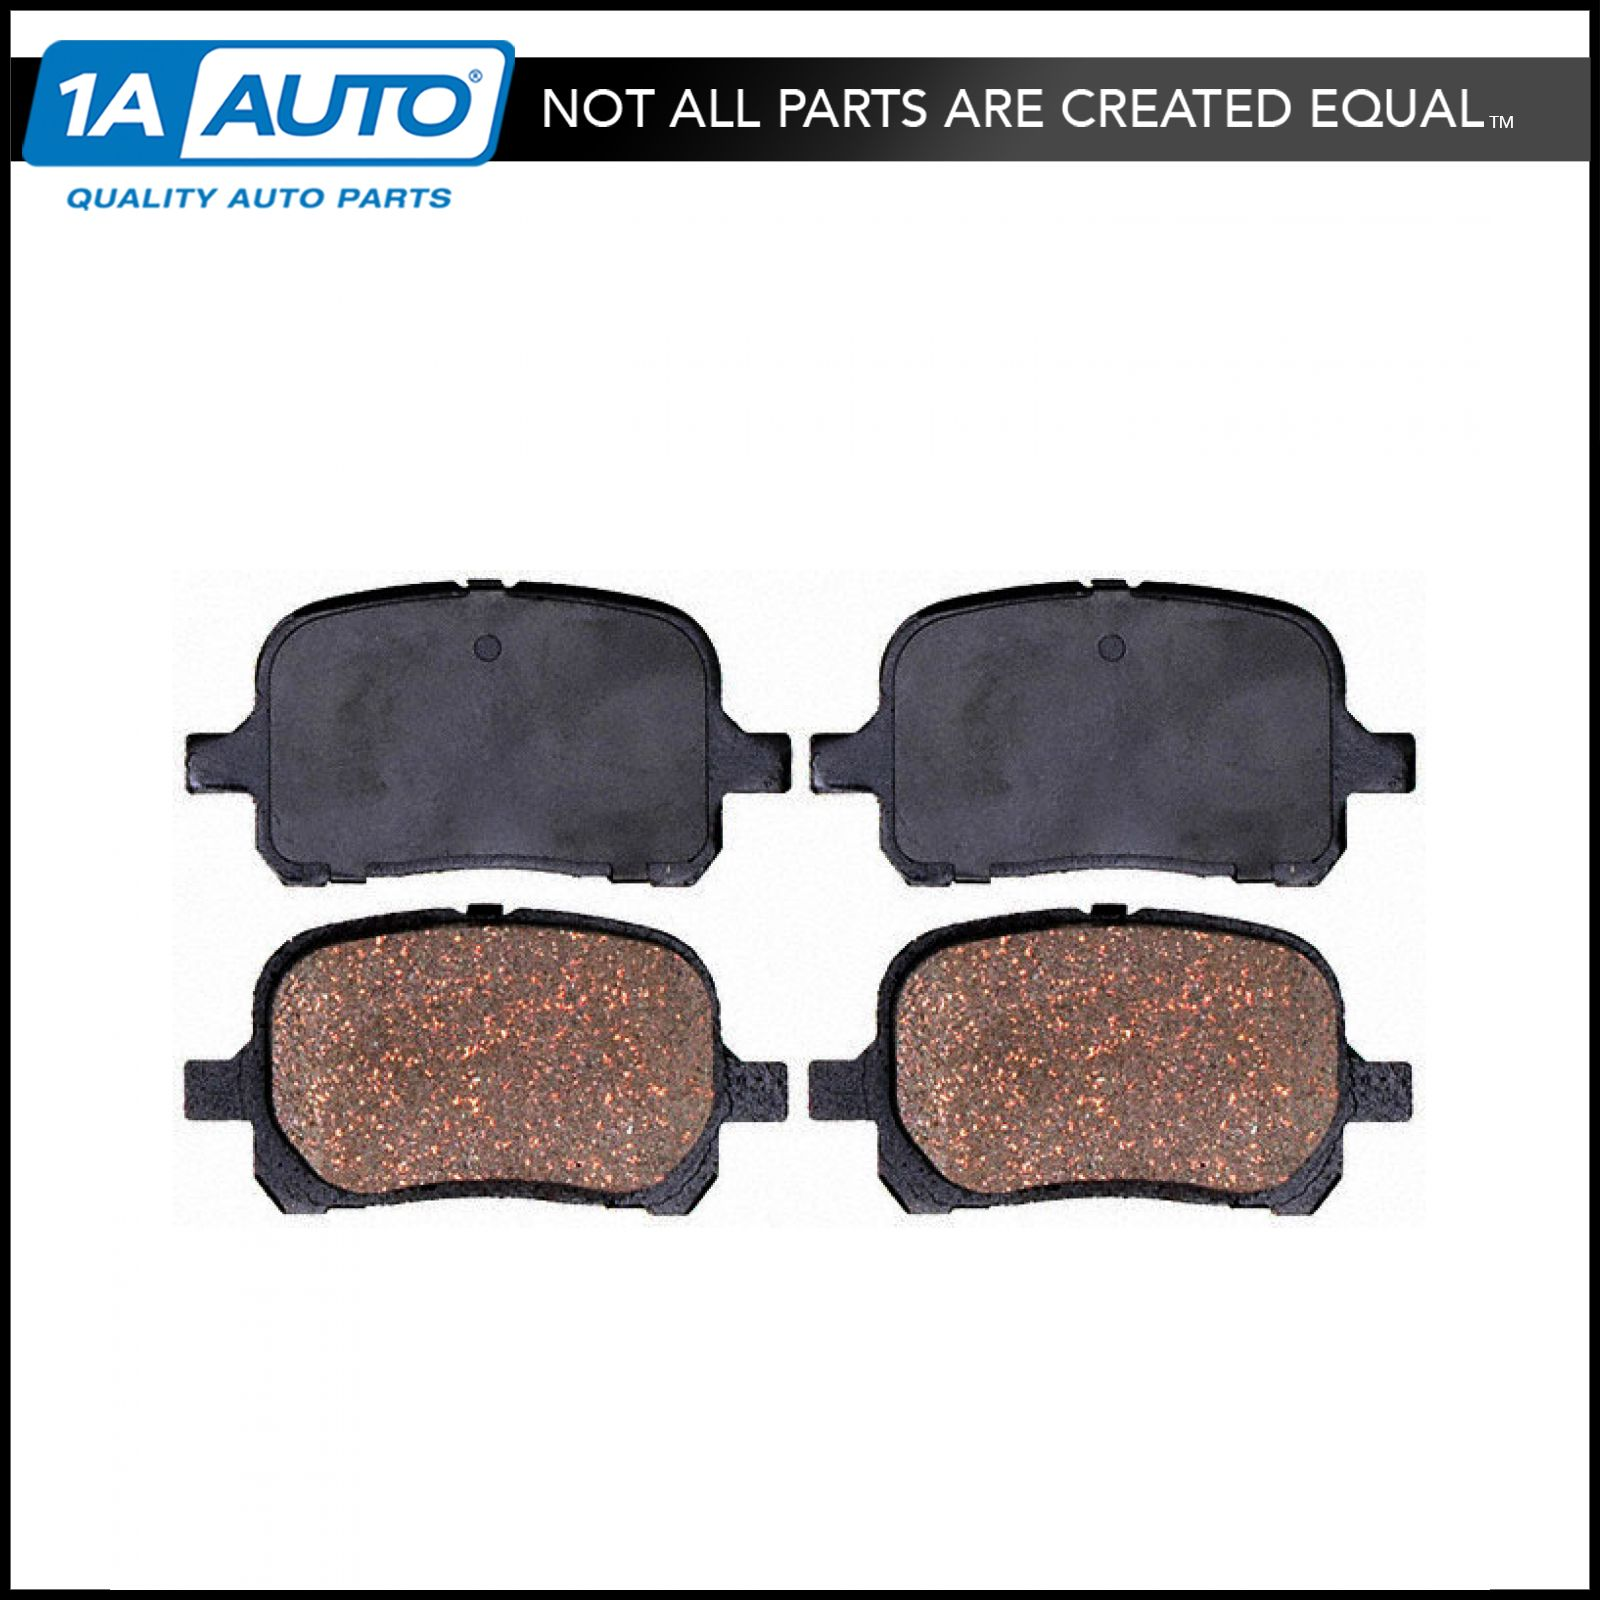 1999 Toyota Camry Brake Pads: Front Ceramic Disc Brake Pads Set Kit RAYBESTOS For Camry